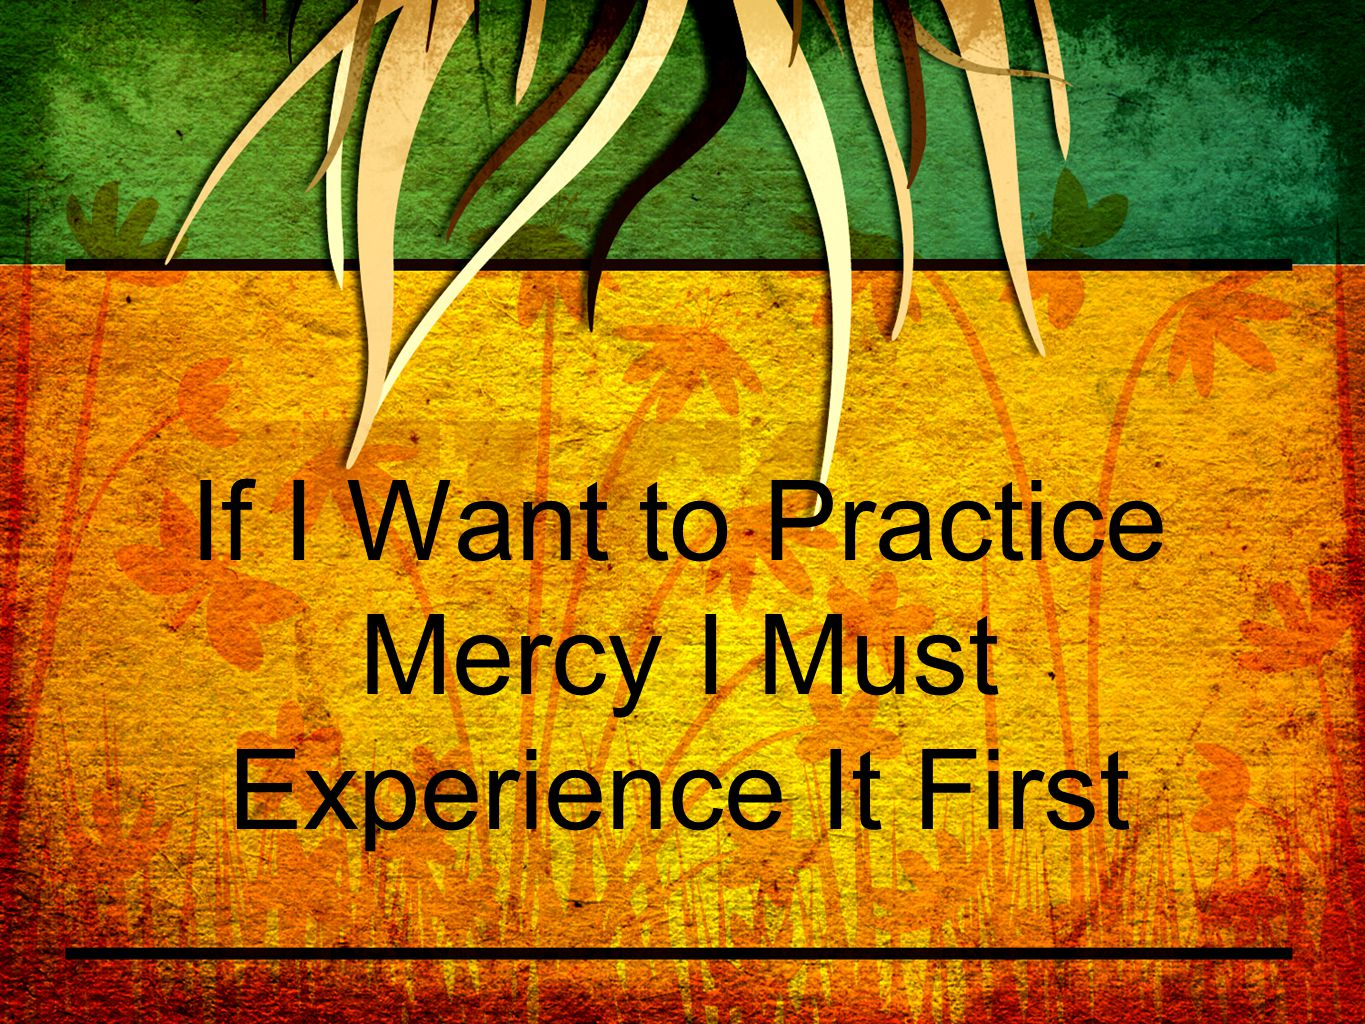 If I Want to Practice Mercy I Must Experience It First